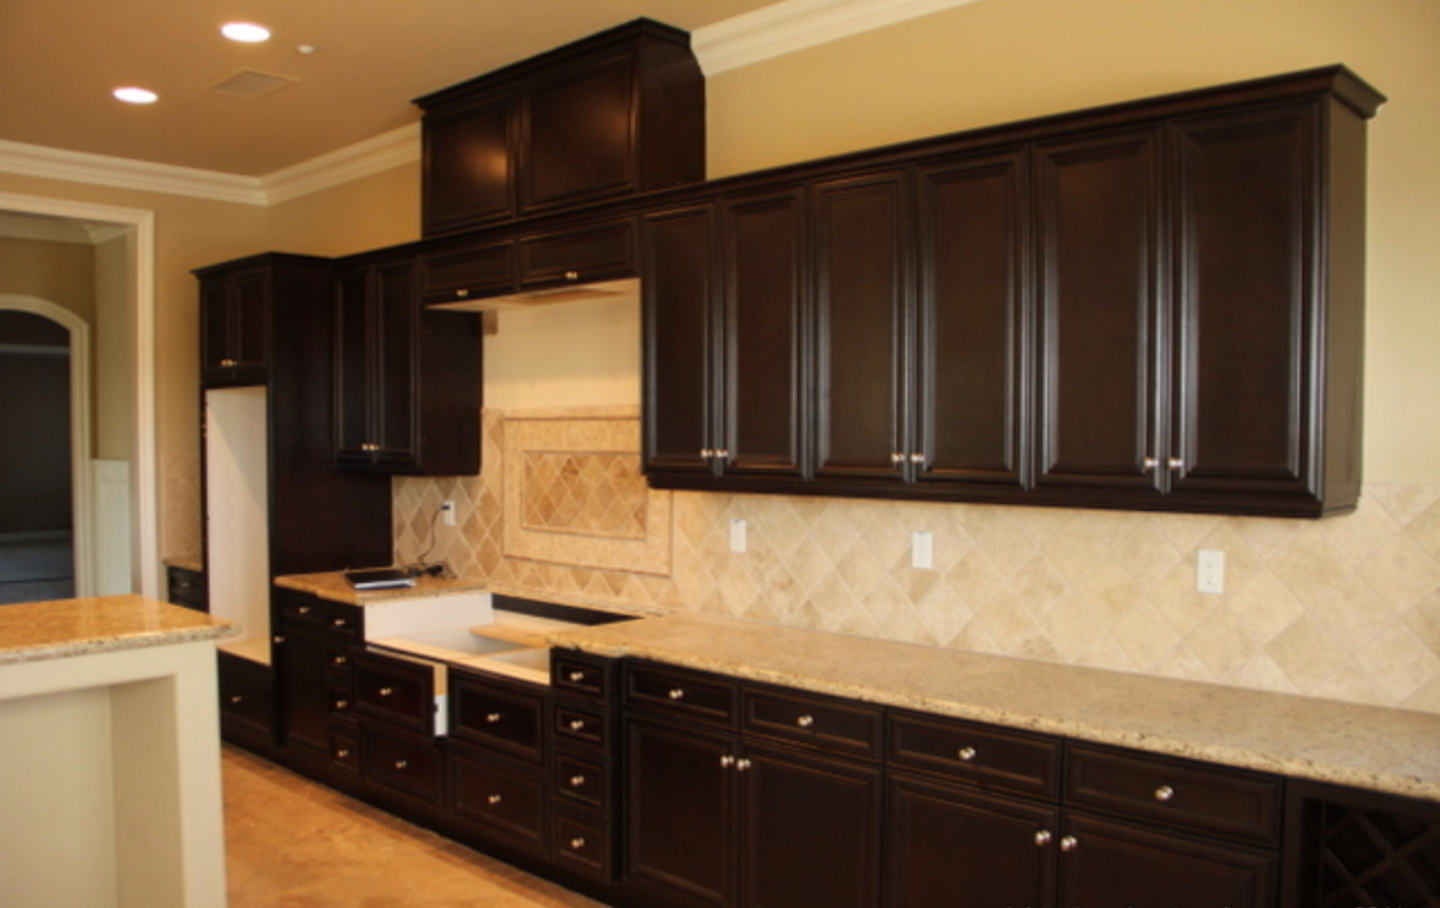 Kitchen Cabinet Painting - Painting Kitchen Cabinets and Cabinet ...